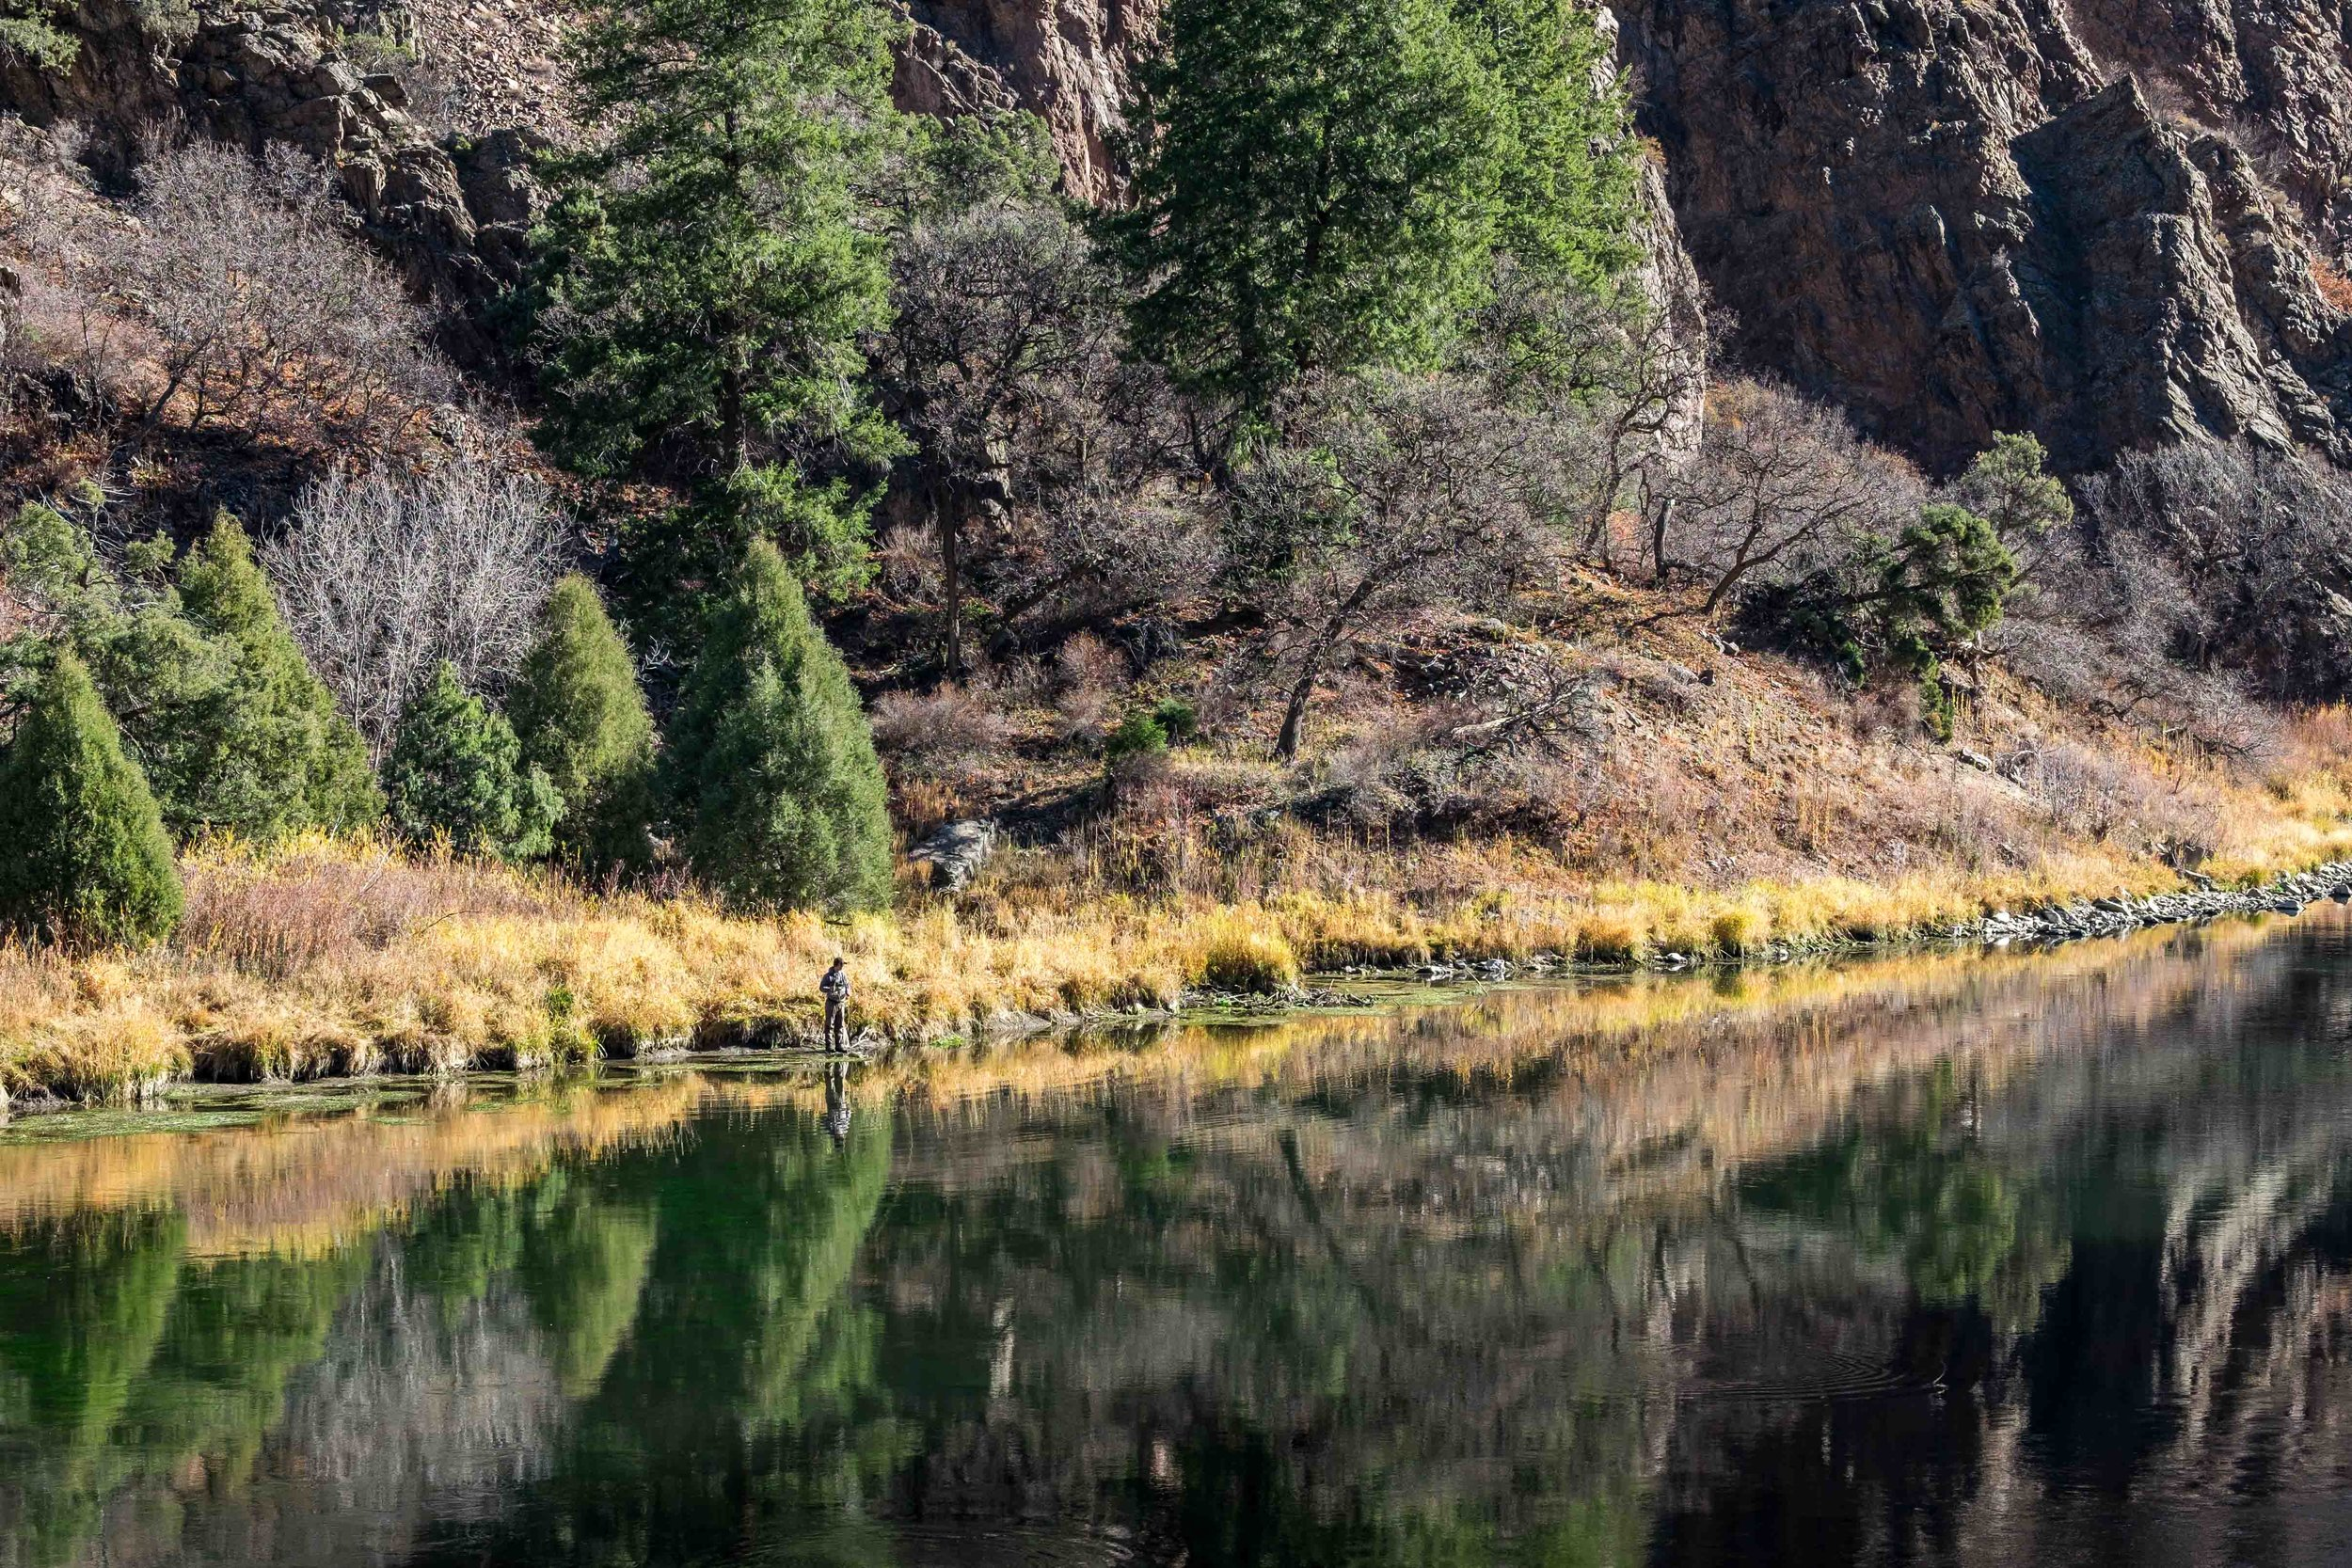 An angler drops a line into the Gunnison River at the bottom of the canyon in the  Curecanti National Recreation Area , also managed by the U.S. National Park Service.